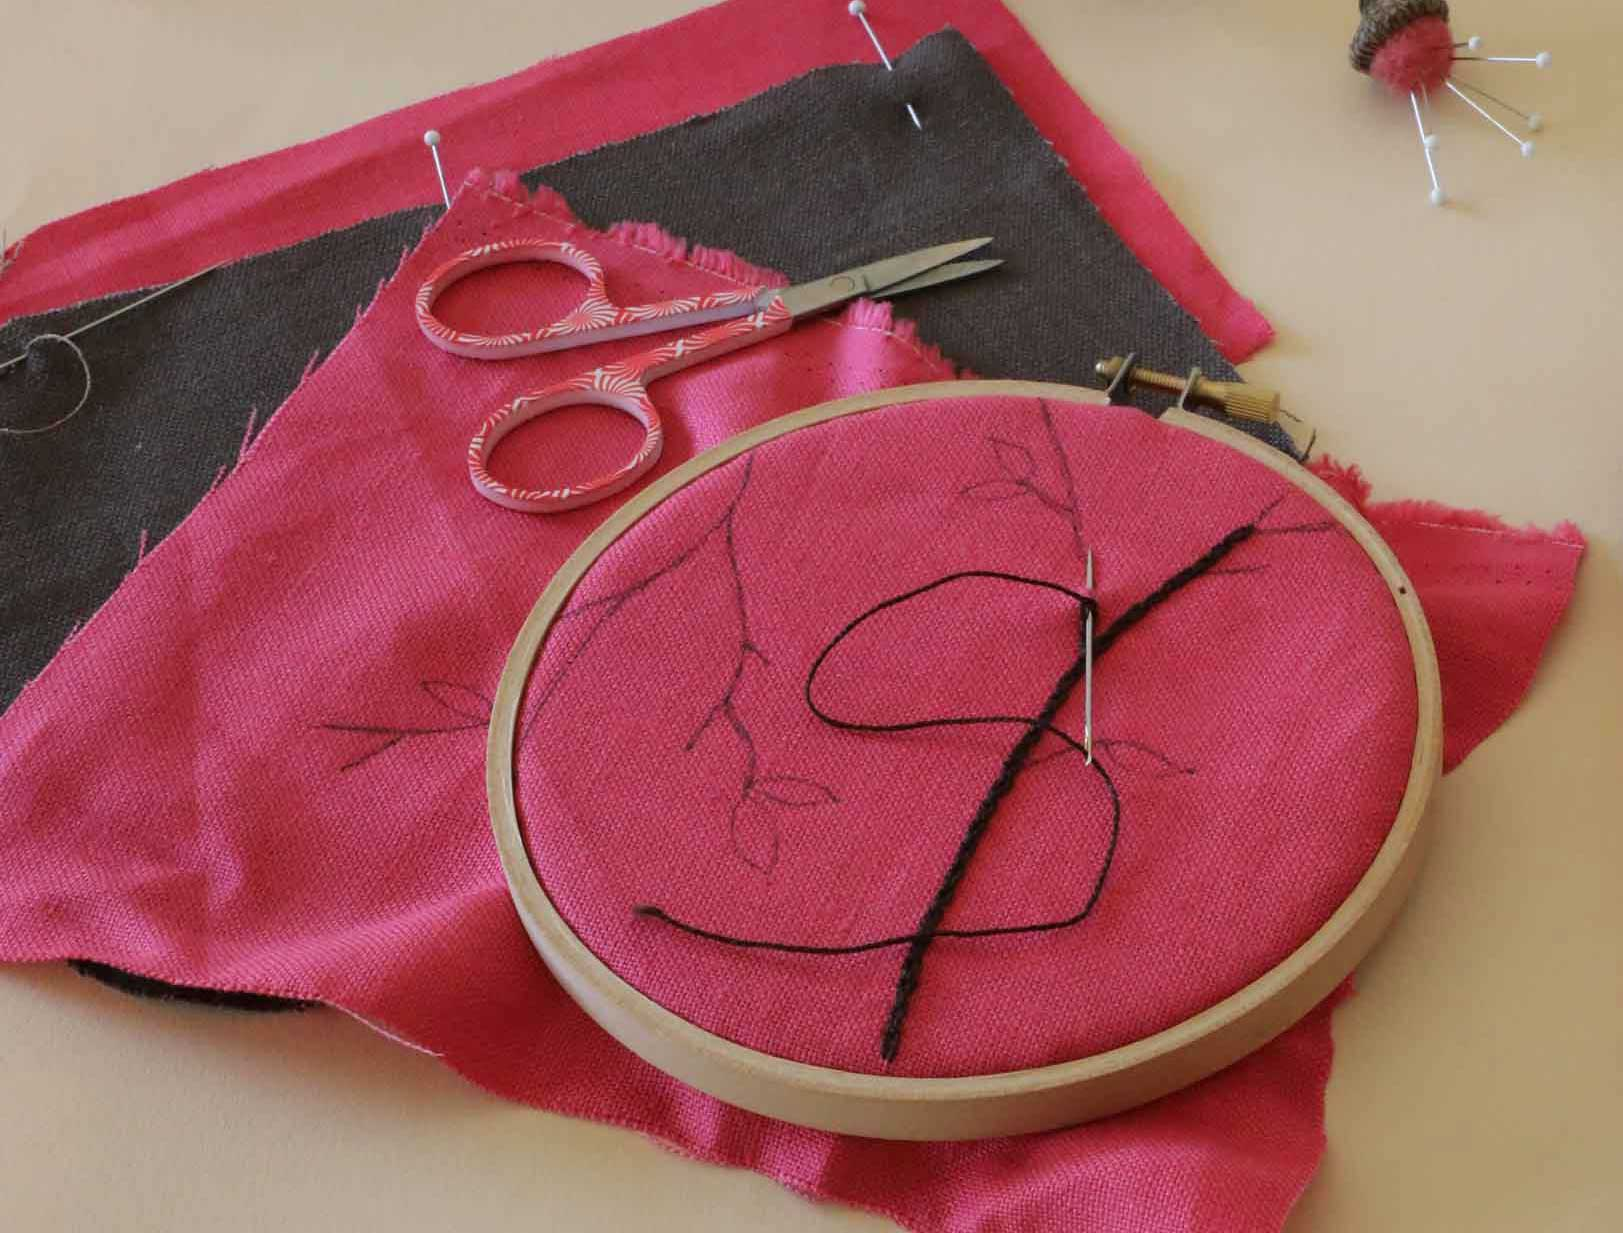 Starting a cheerful embroidery project of flower blossoms on pink linen. We have the design sketched in and the embroidery hoop ready to go.